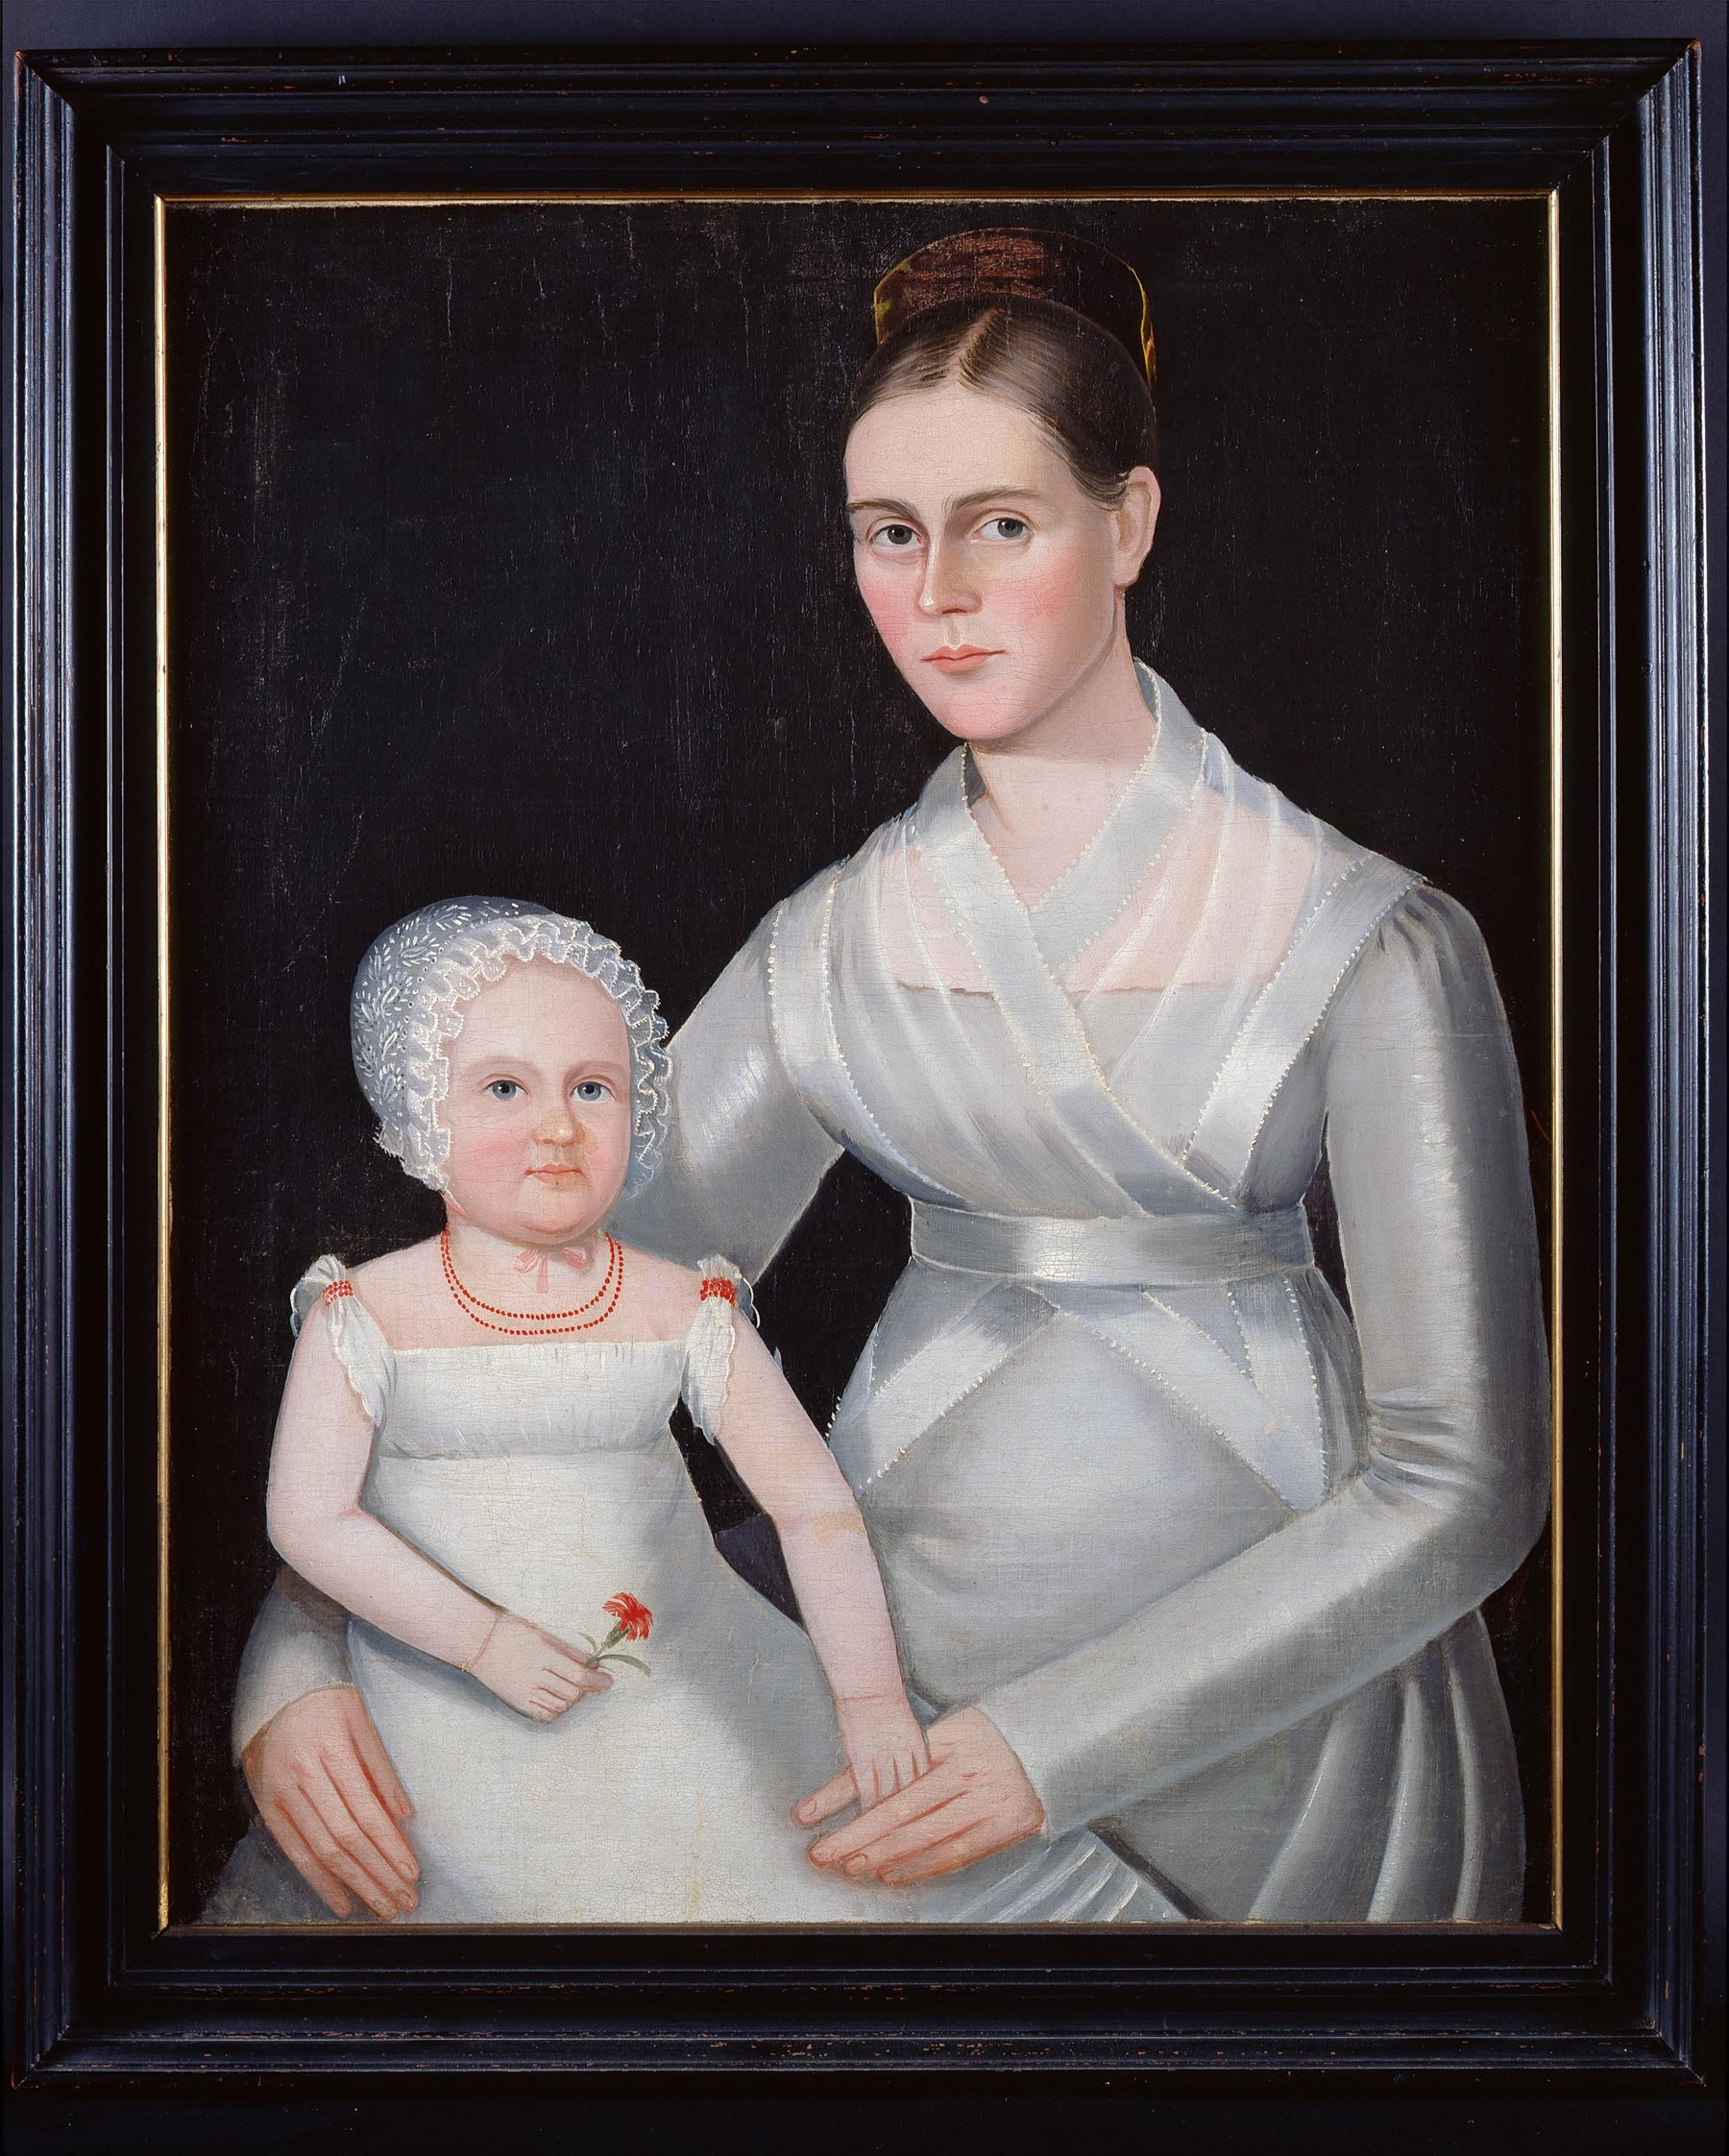 Attributed to Ammi Phillips (1788-1865), Mother & Child, ca. 1825. Oil on canvas, 39 × 33 ½ in (99.1 × 85.1 cm). Fenimore Art Museum, Gift of Stephen C. Clark, N0267.1961.